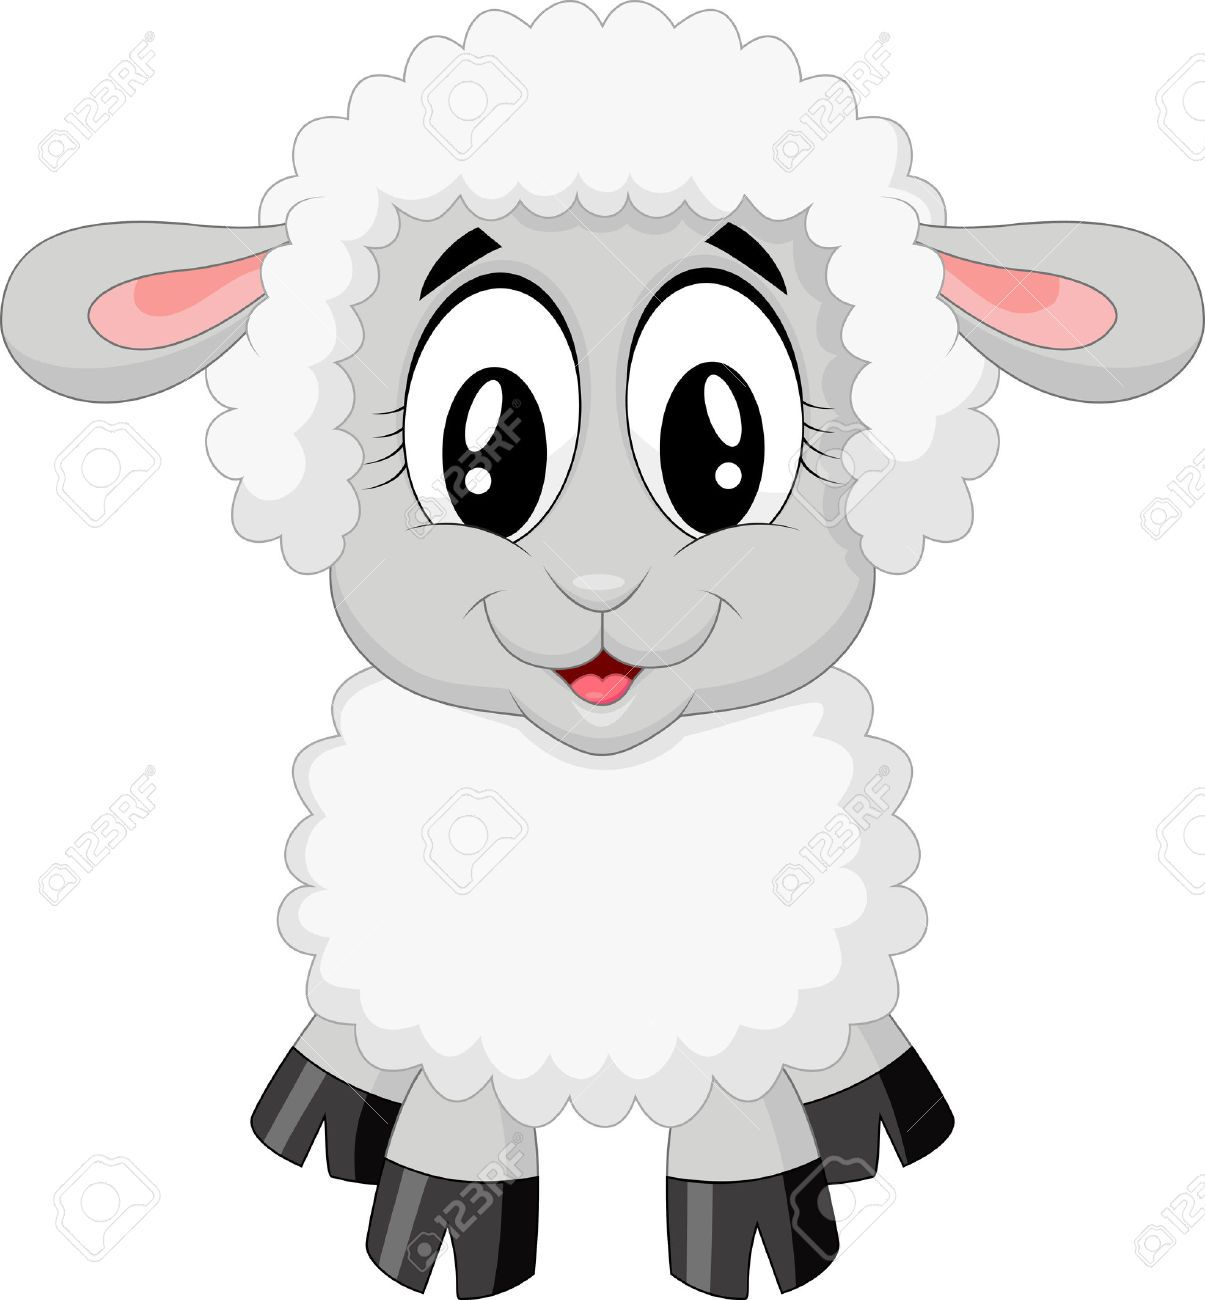 Cute Sheep Drawing Tumblr Cute Baby Sheep Cartoon Pesquisa Google Western Party